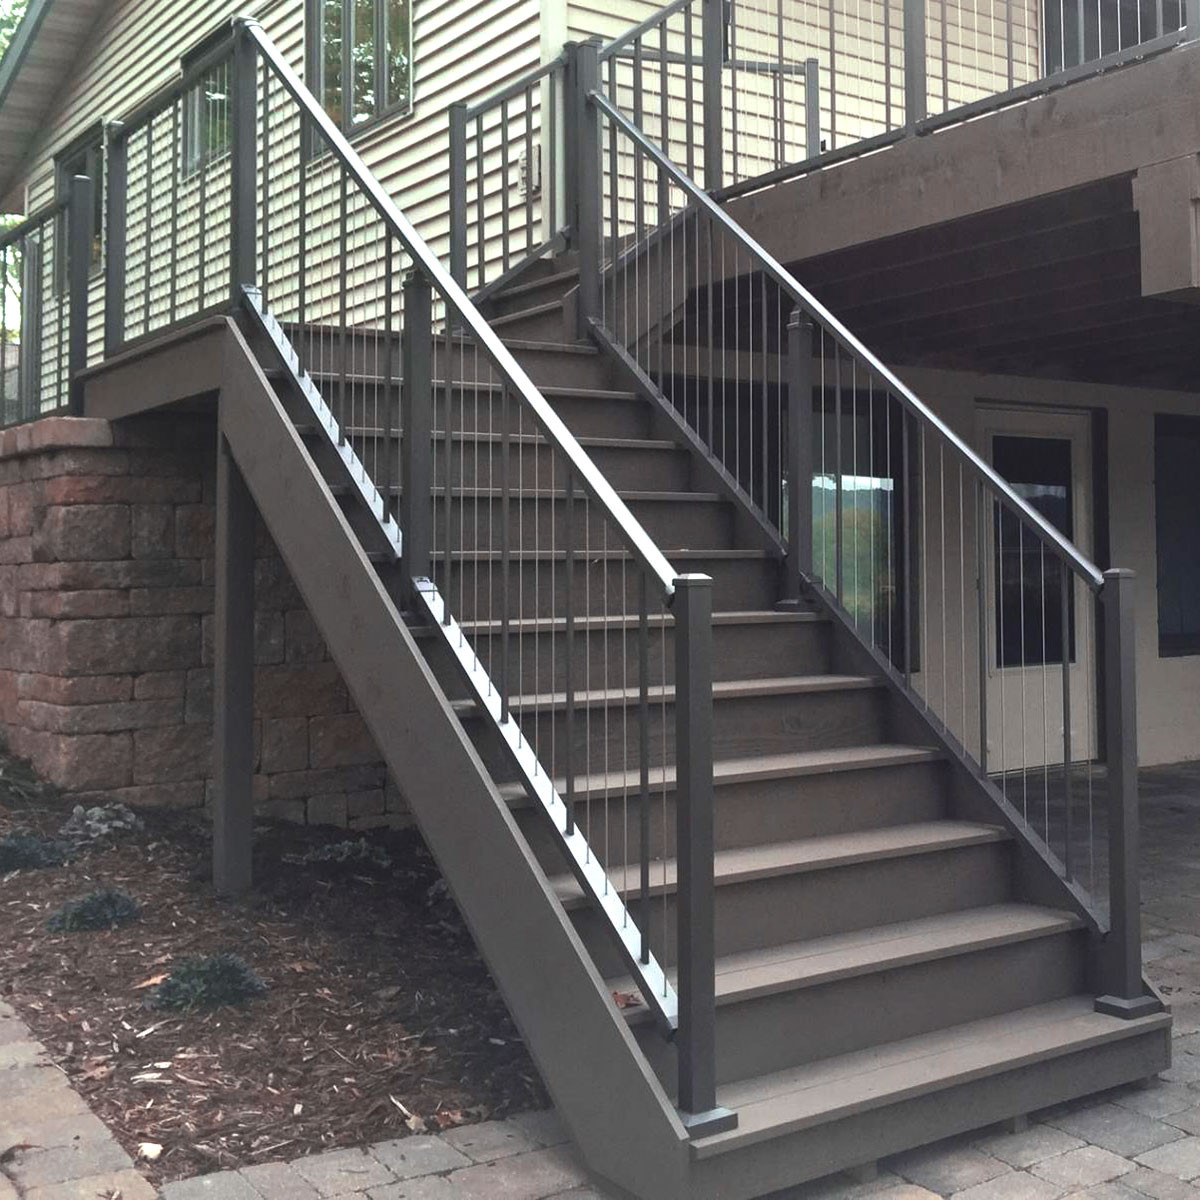 Aluminium Trapleuning Verticable Stair Rail Section Kits By Westbury Aluminum